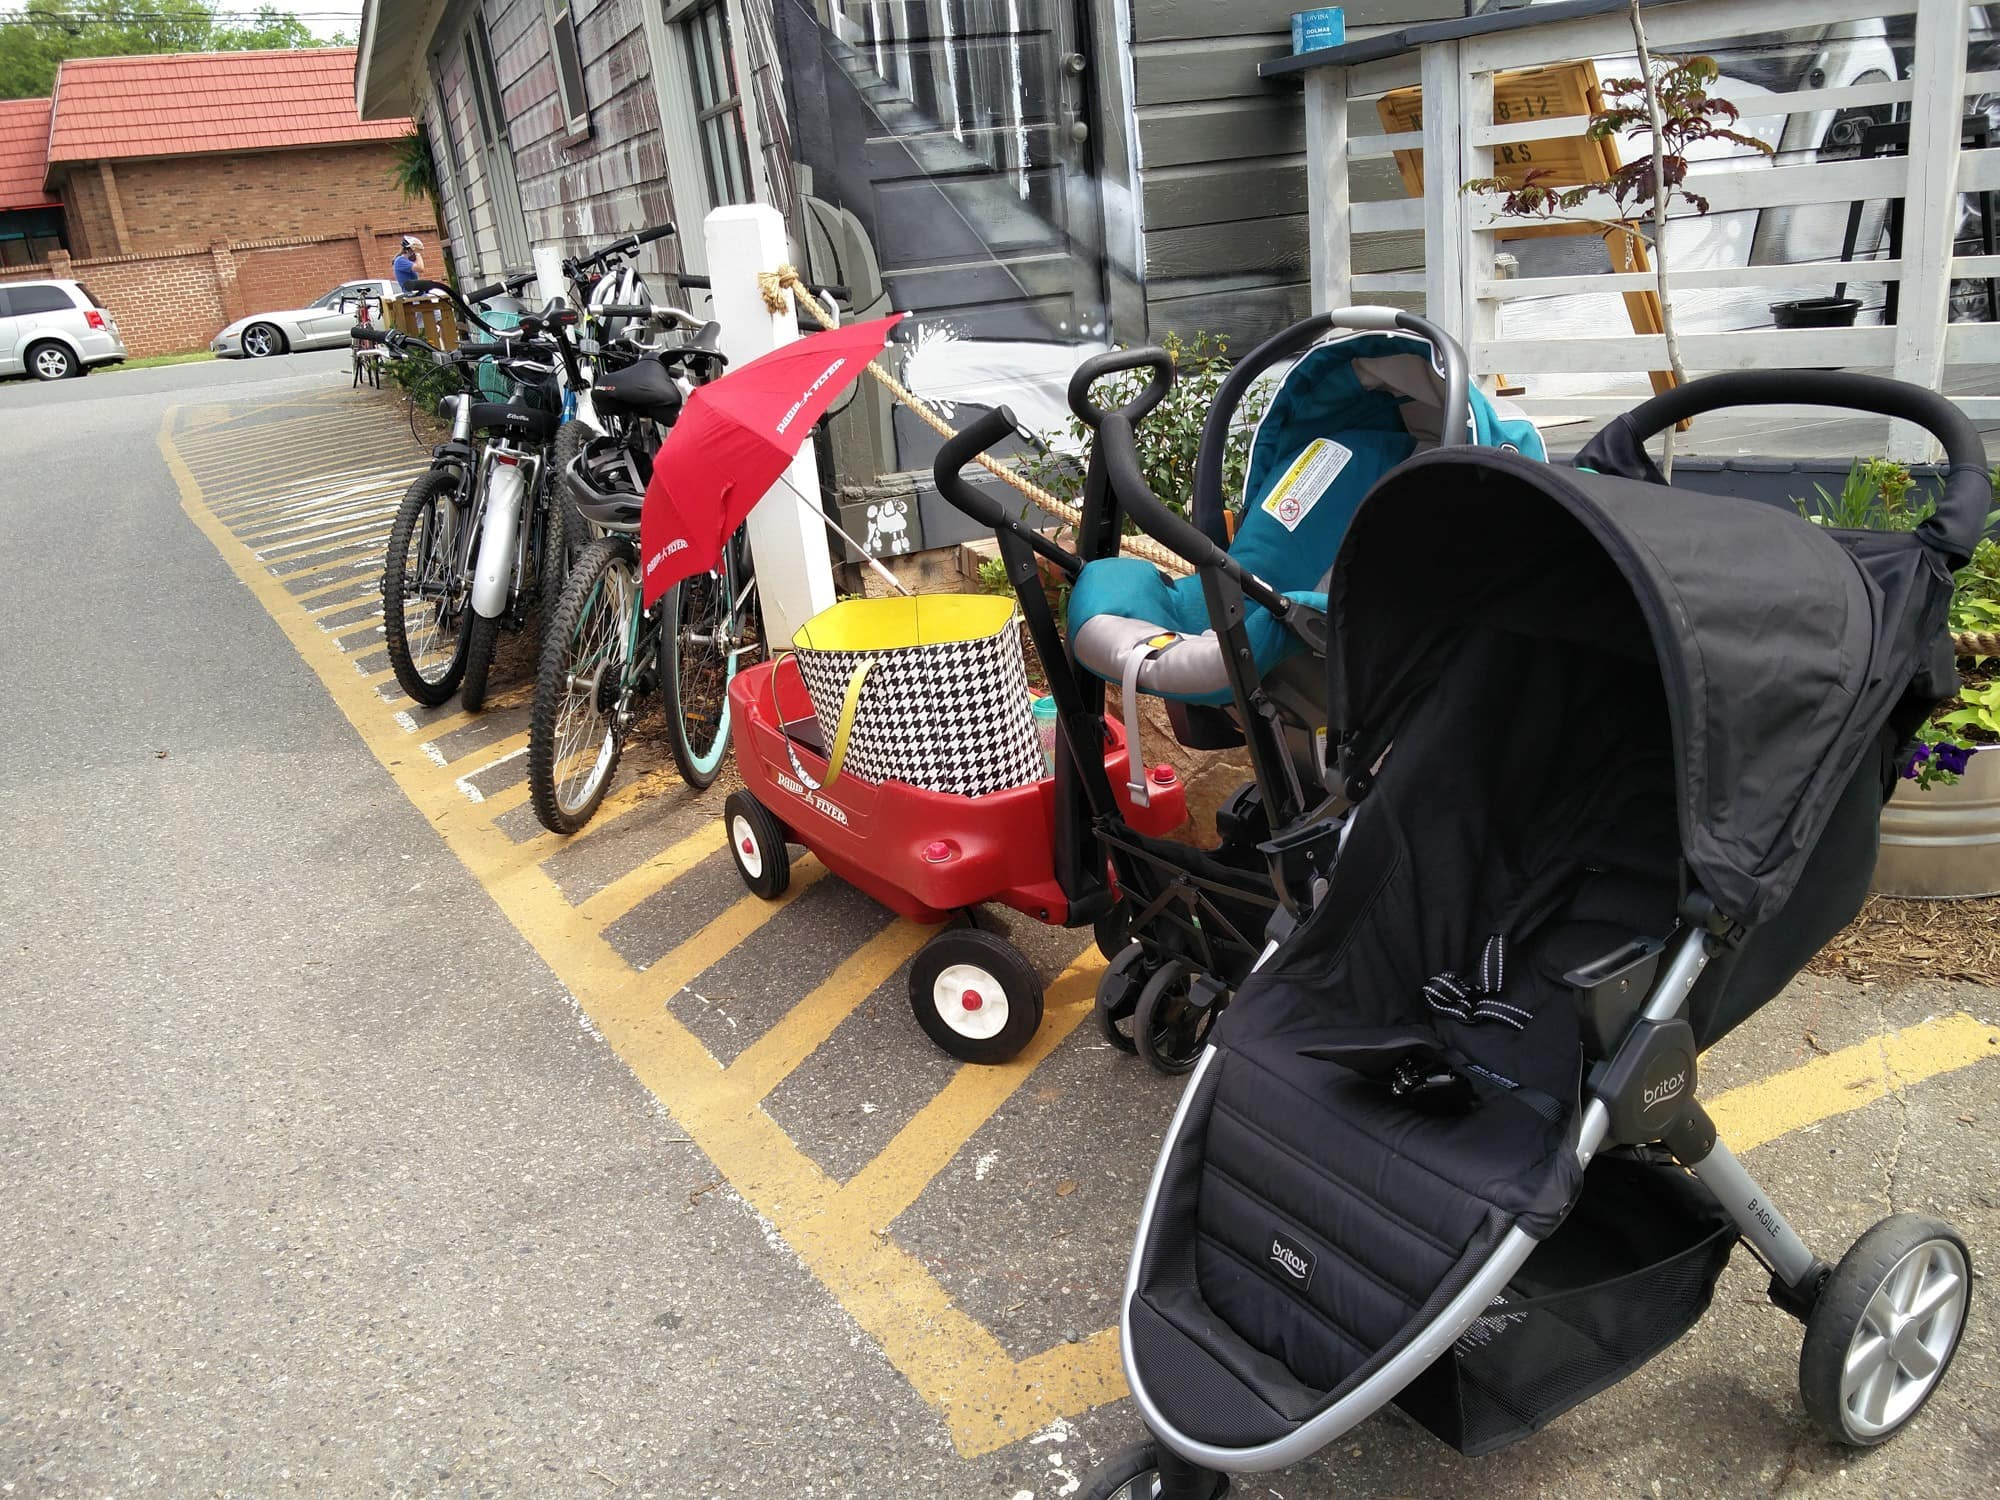 Strollers parked outside a brewery in Charlotte ~ 10 Tips for Visiting a Brewery with Kids